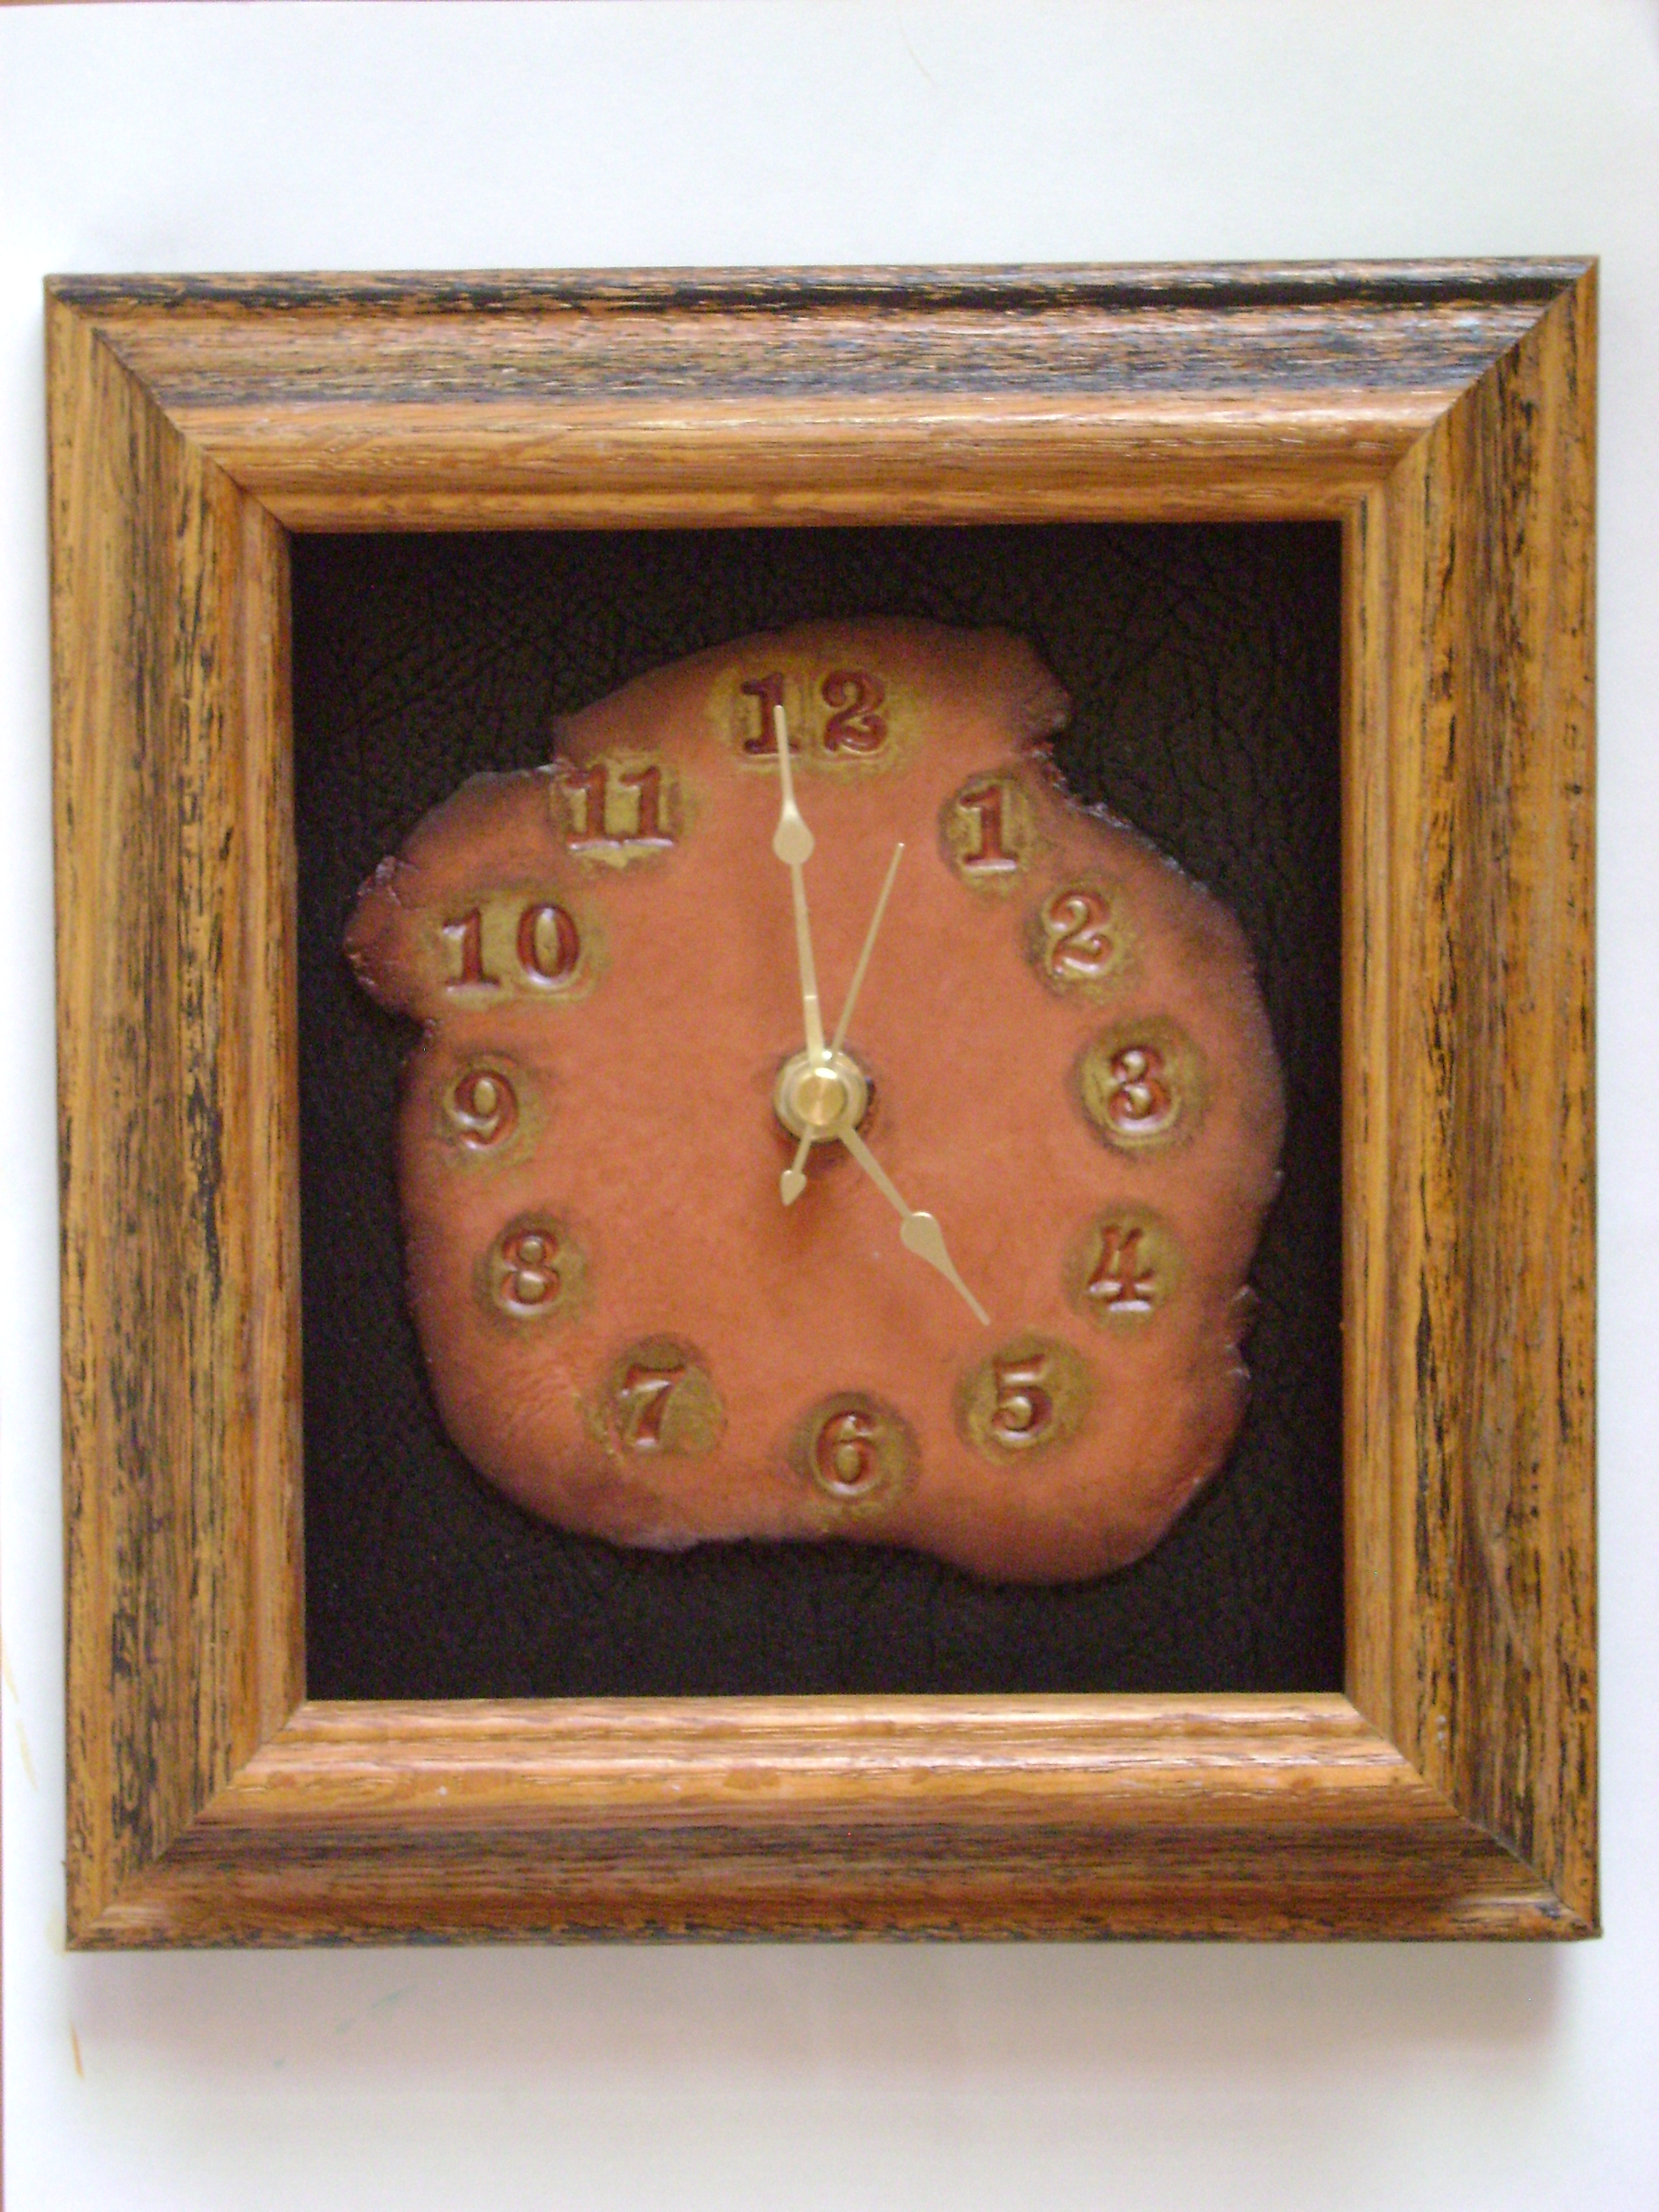 #168-Clock in frame